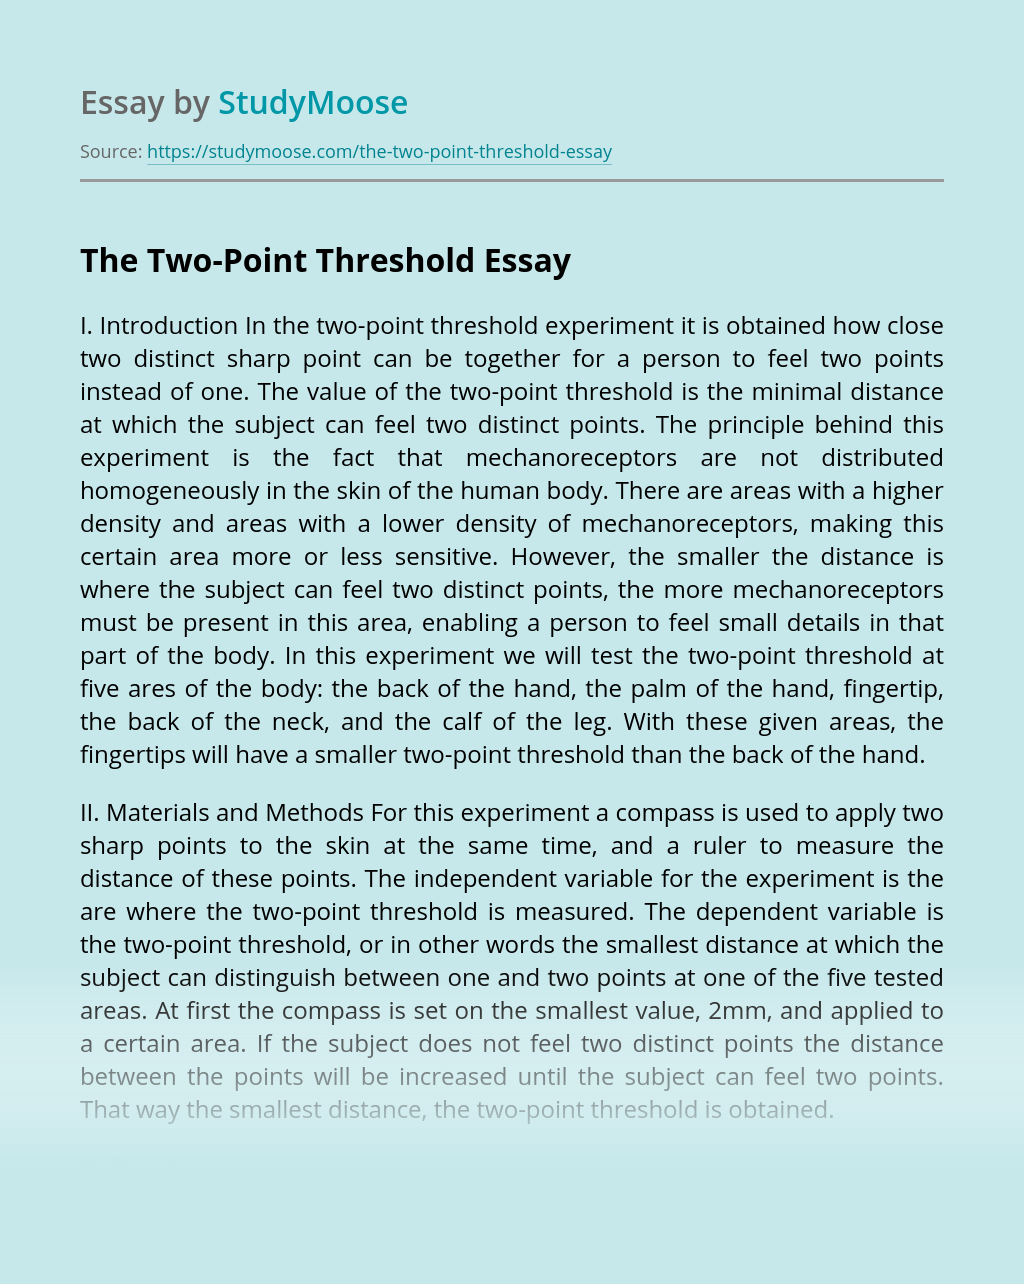 The Two-Point Threshold